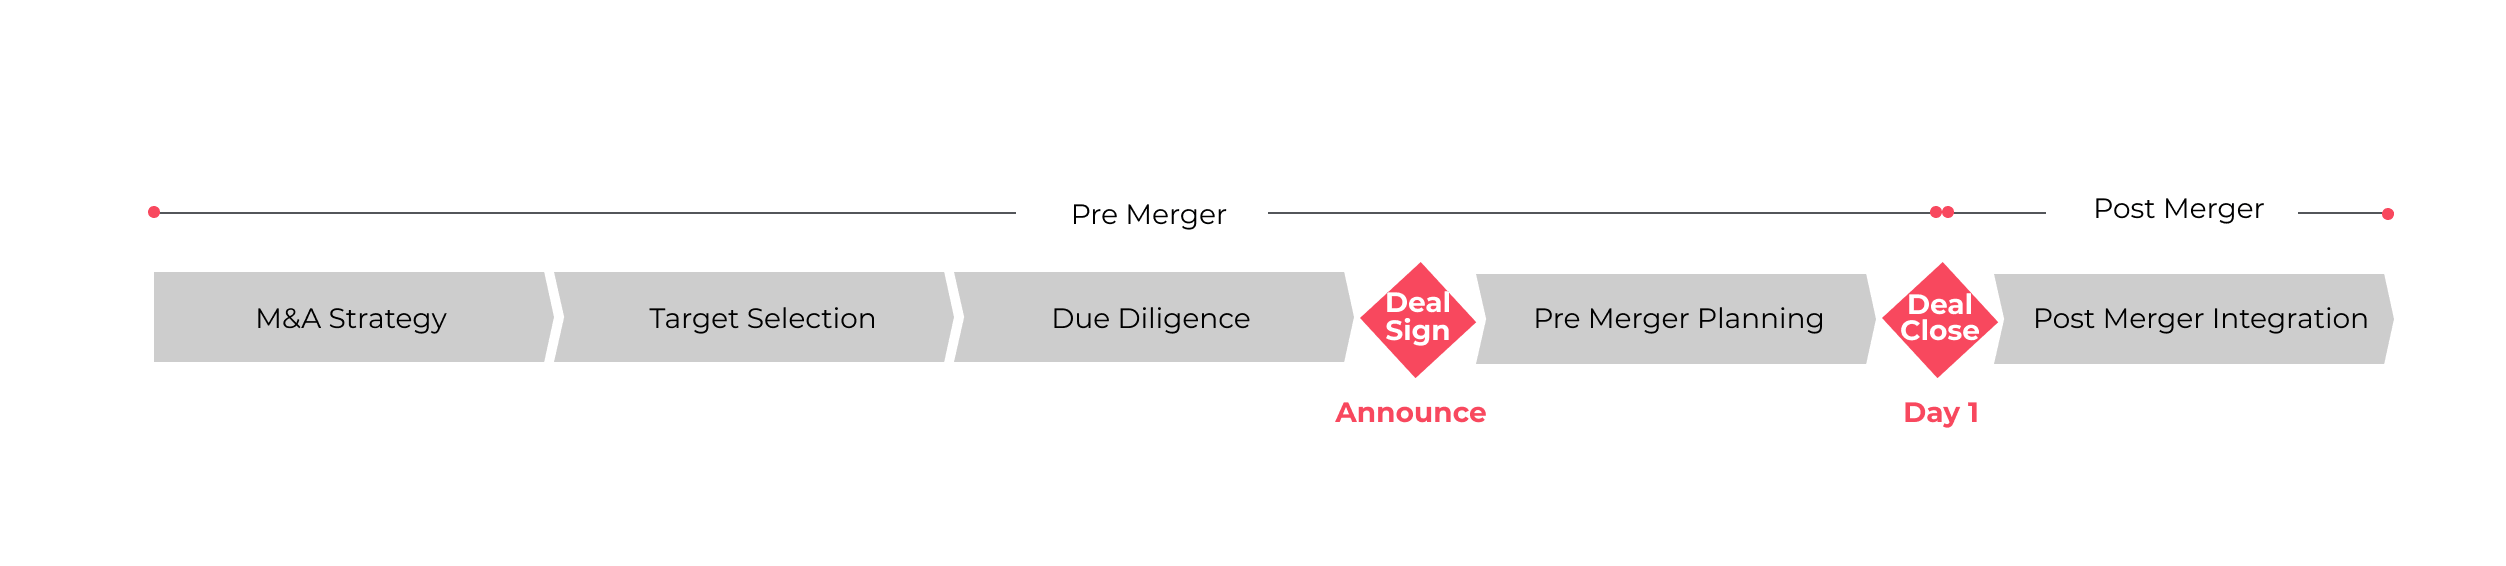 DMC-approach-mergers-